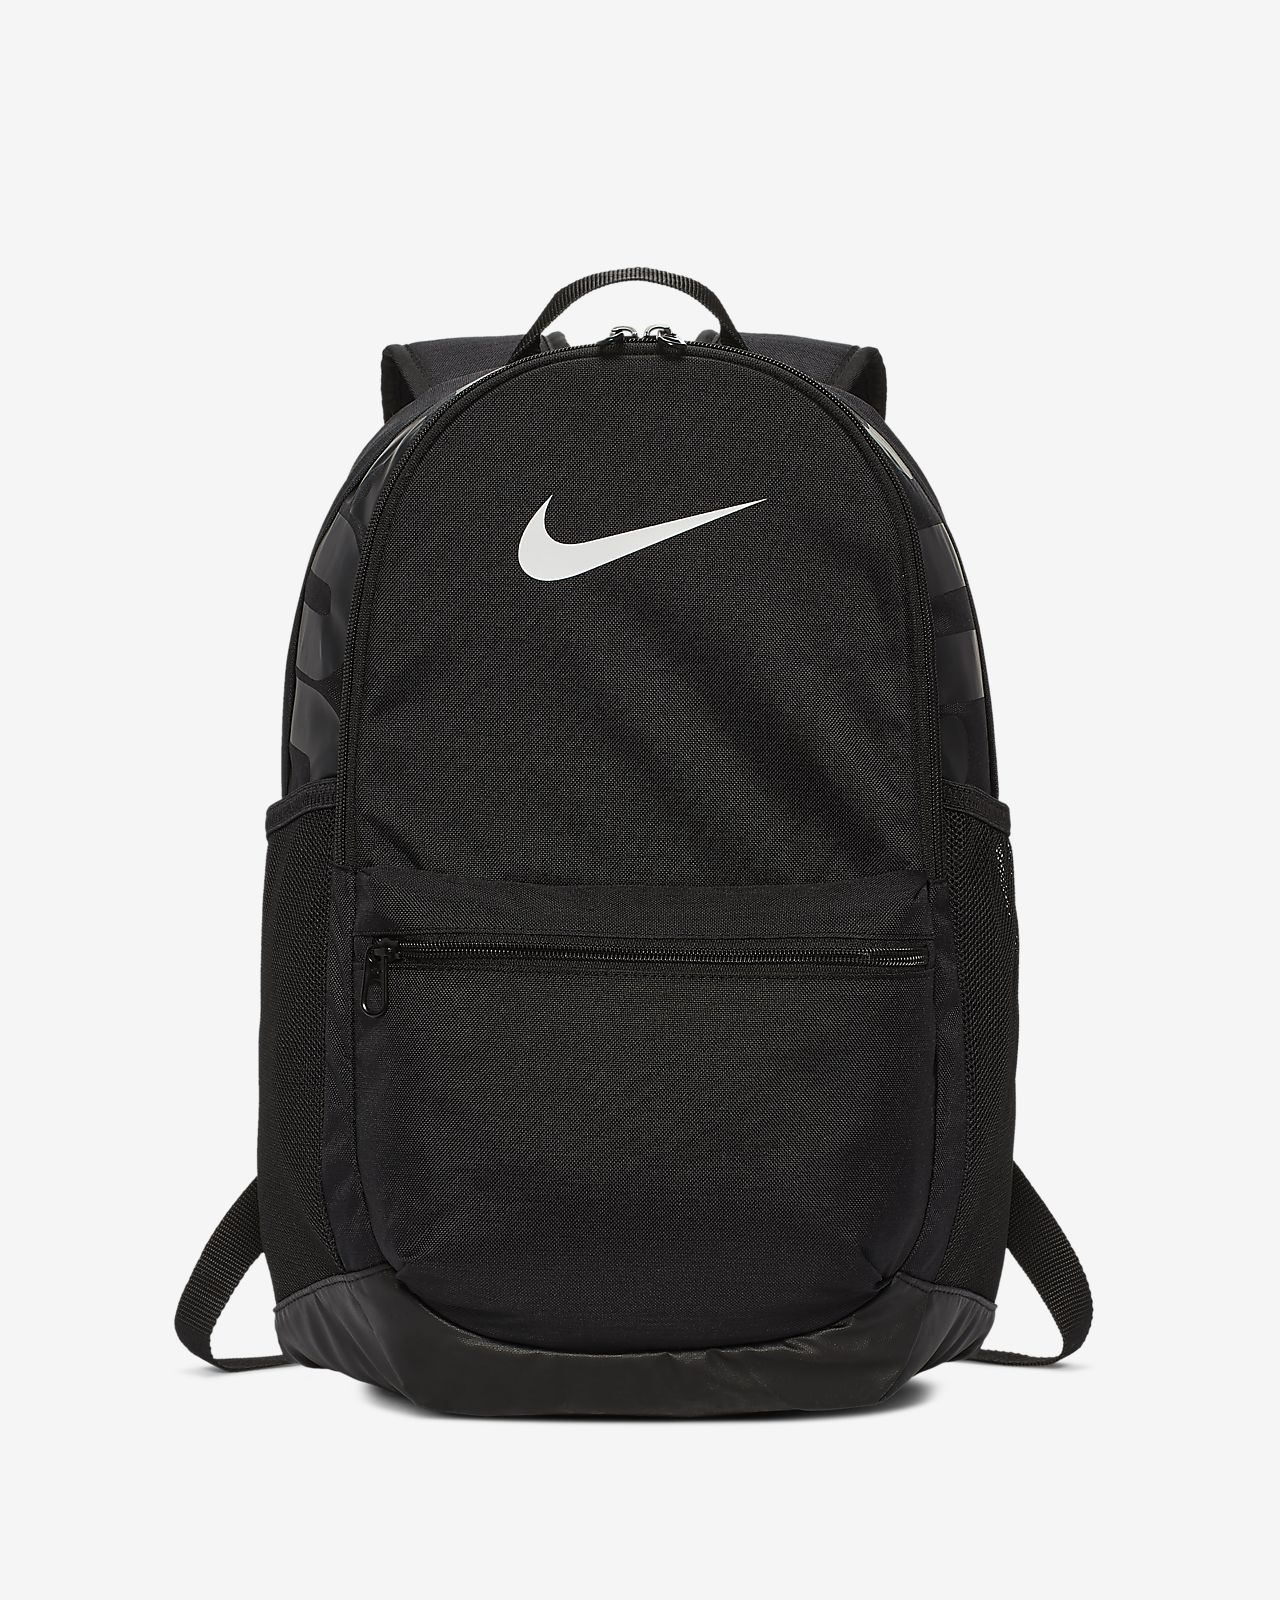 58f77271f76d Nike Brasilia (Medium) Training Backpack. Nike.com